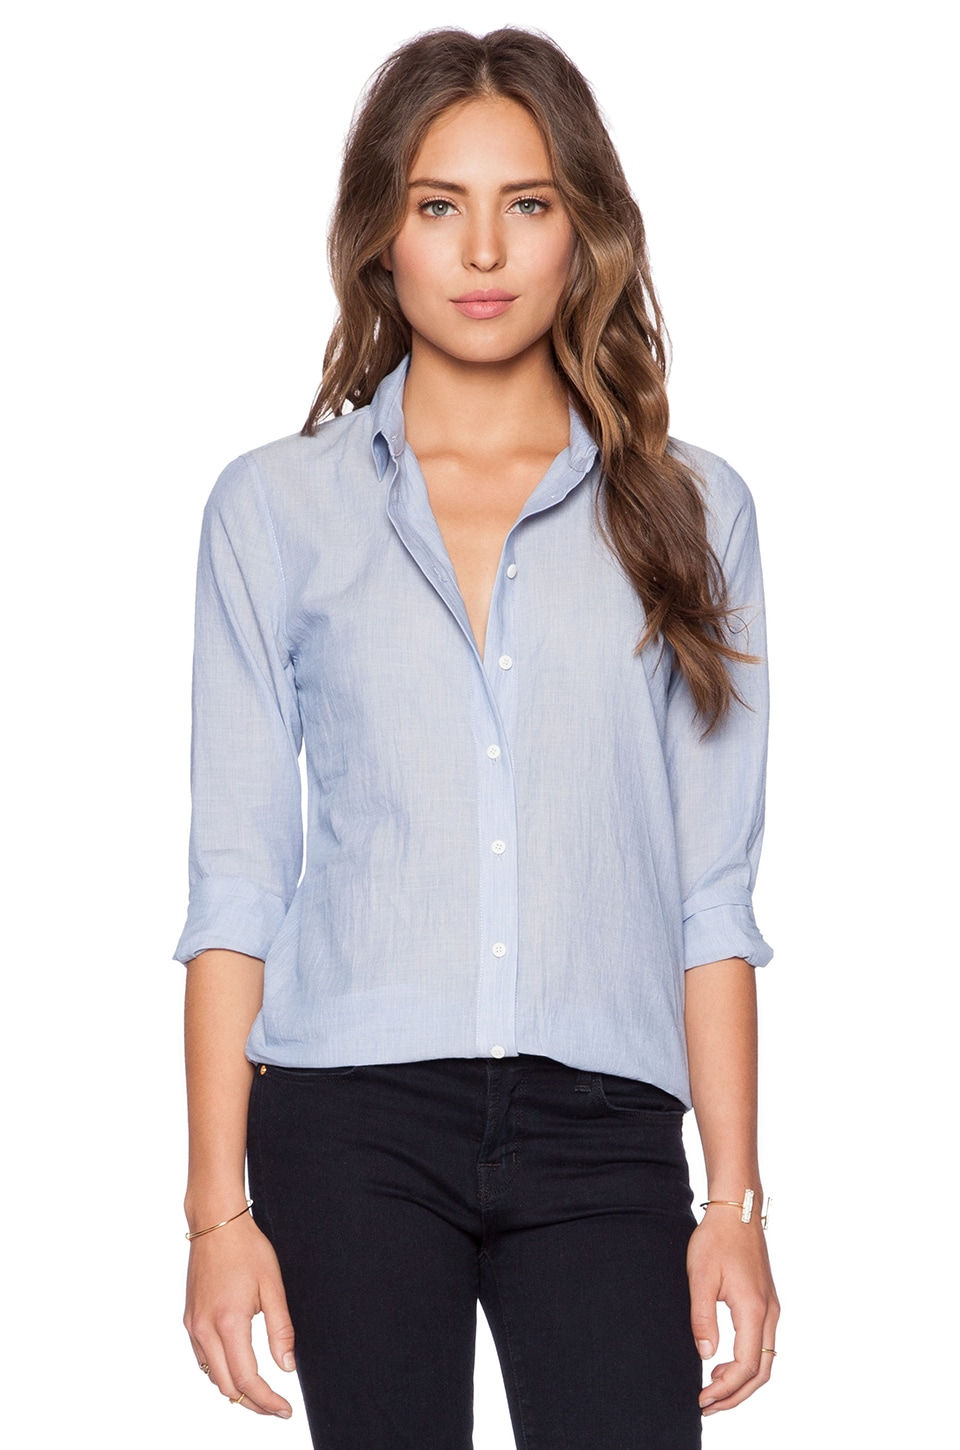 J Brand Venice Blouse in Porcelain Blue